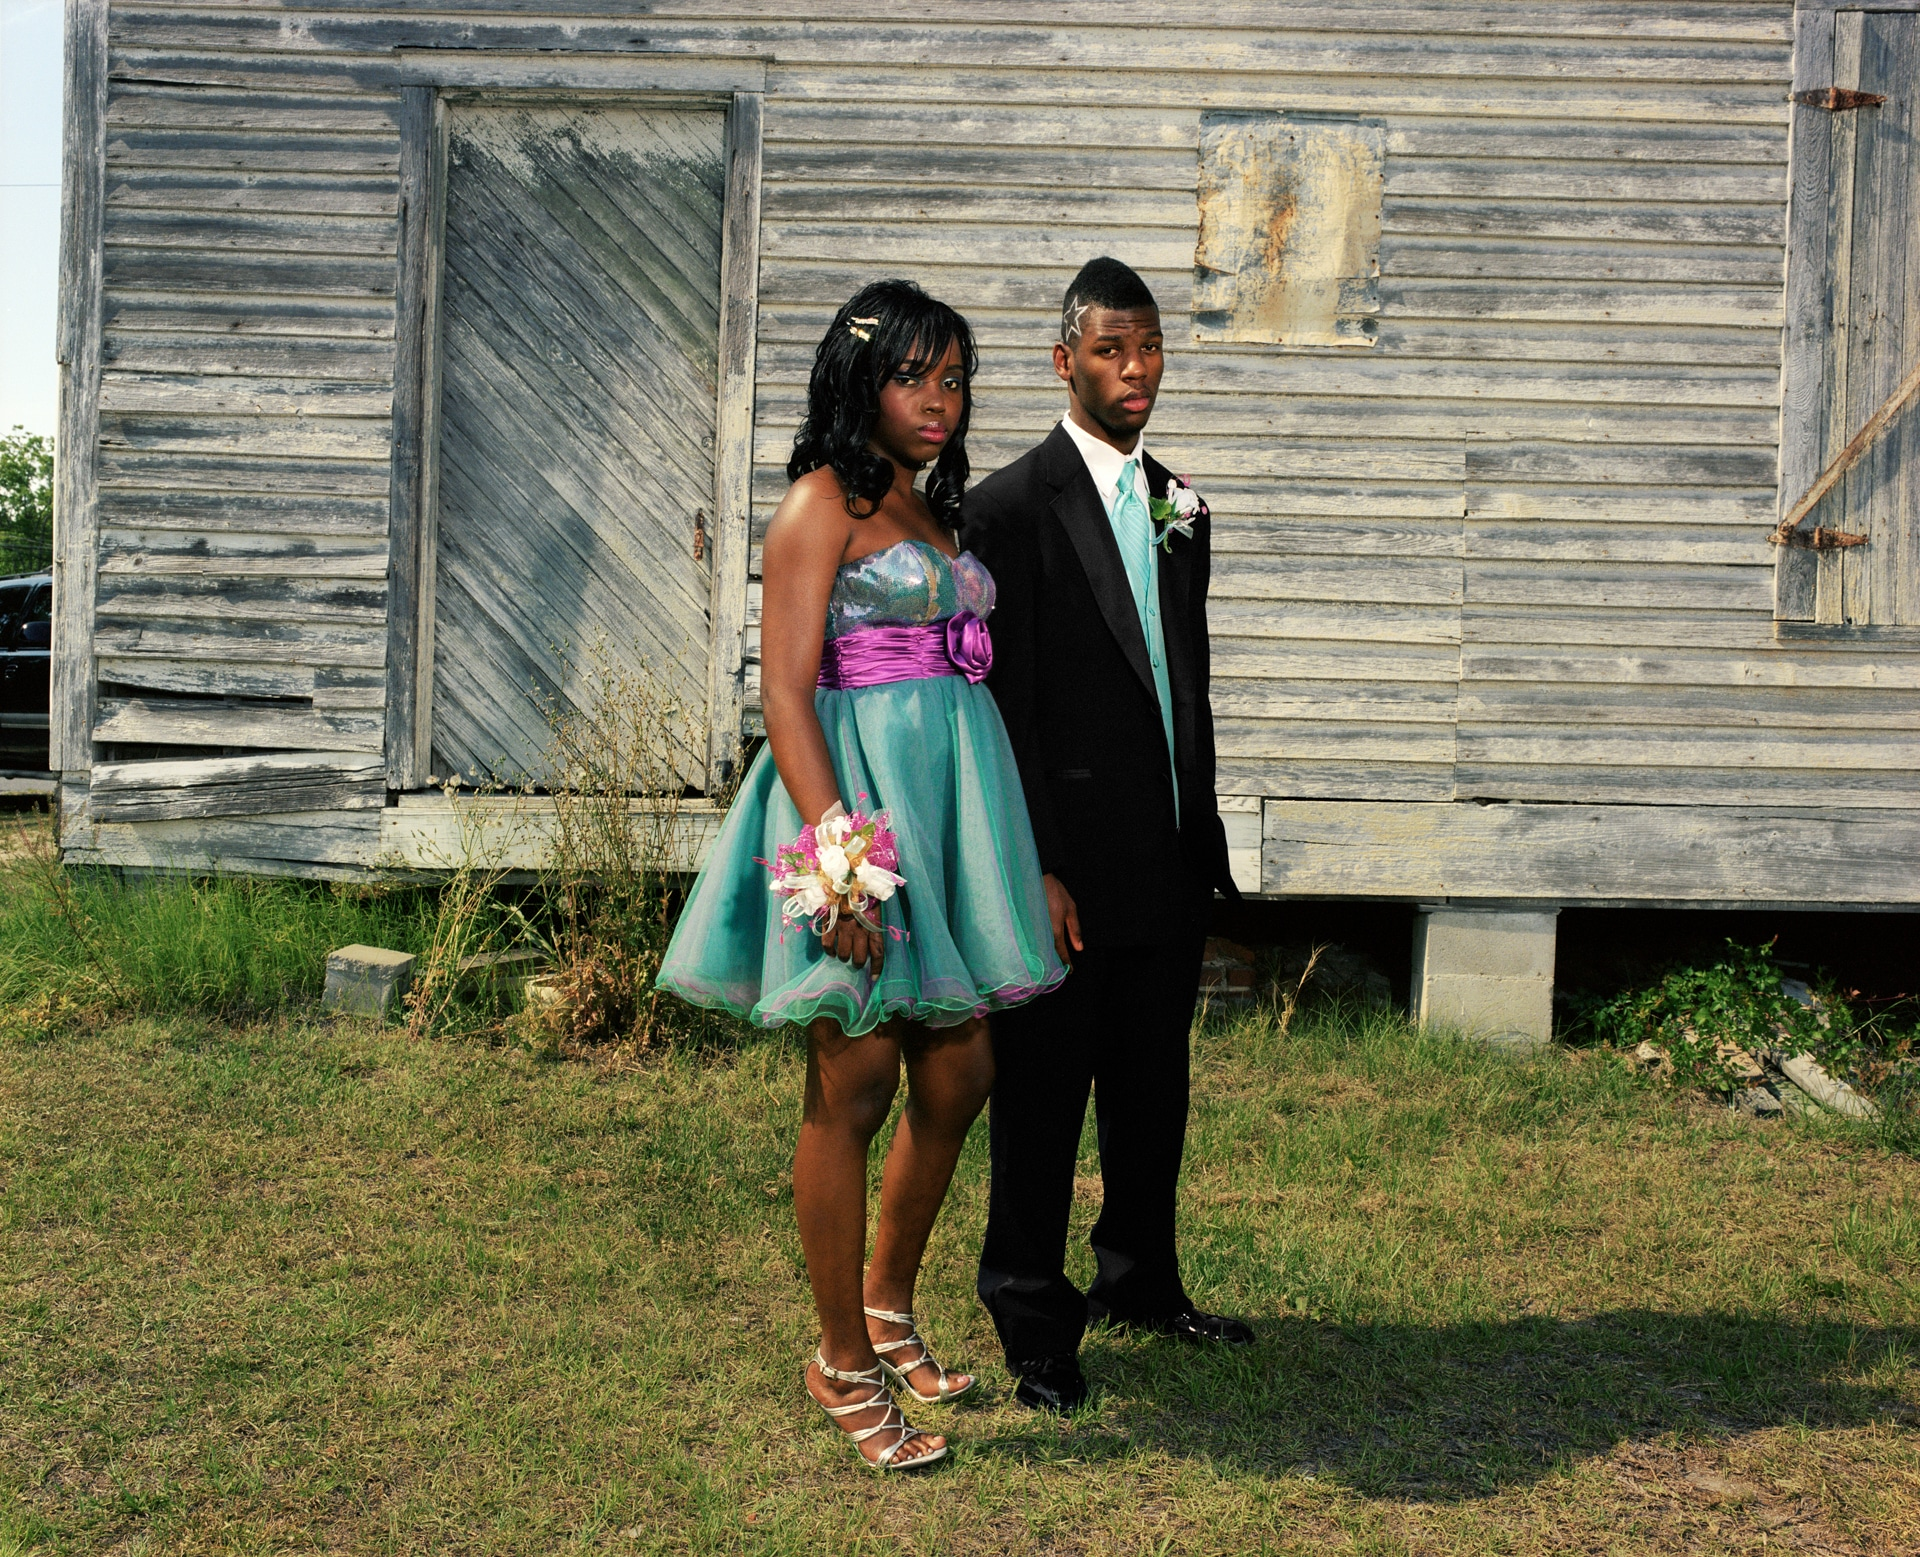 MOUNT VERNON, GEORGIA – MAY 2011: Amber and Reggie on May 7, 2